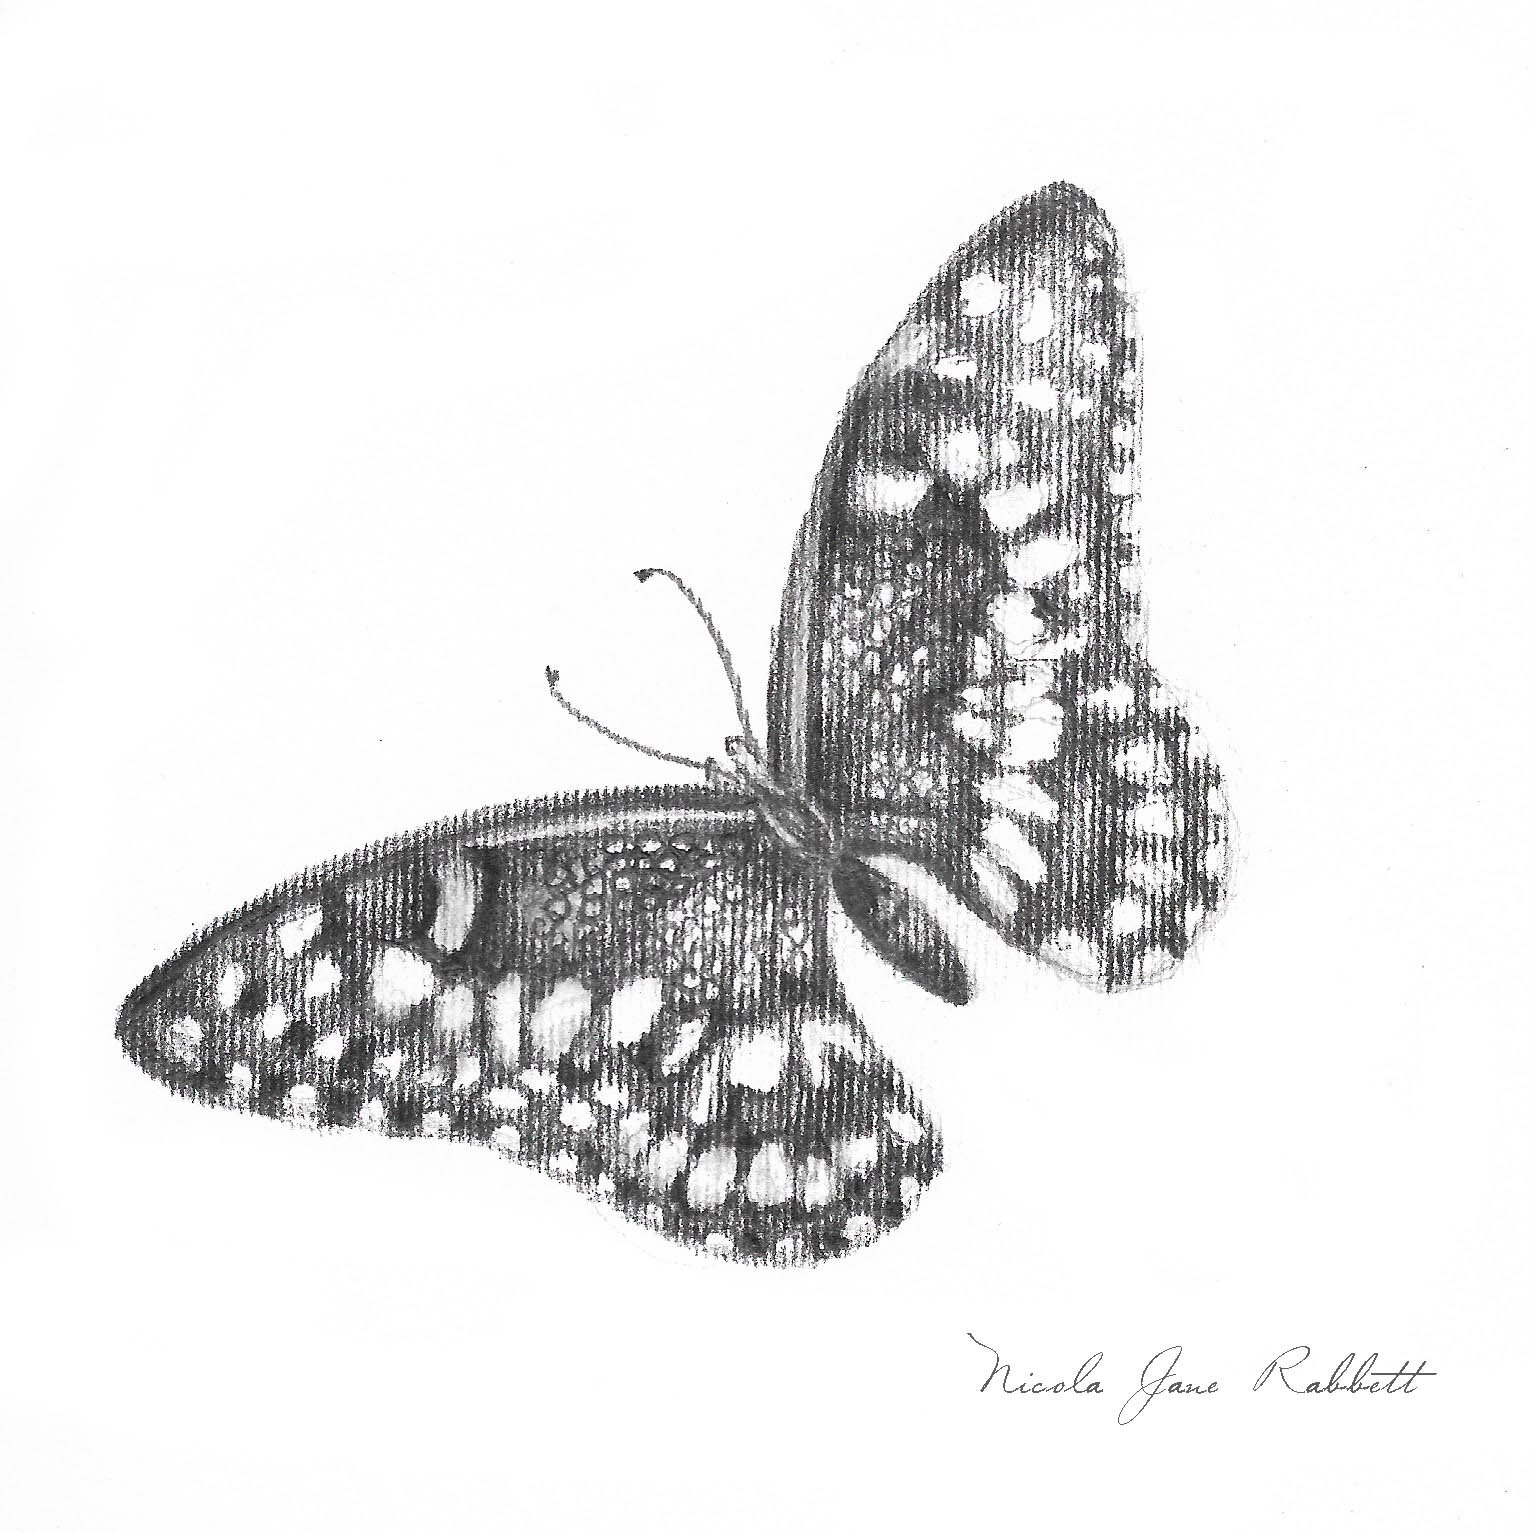 Beautiful Butterfly - The magical qualities of the butterfly. With it's uniquely patterned, featherlight wings, continues my journey with my #monochrome drawings.. It is a #work-in-progress at the moment as I need to add the fine details. This will be added to my collection of #original #drawings in the store, once finished and framed.